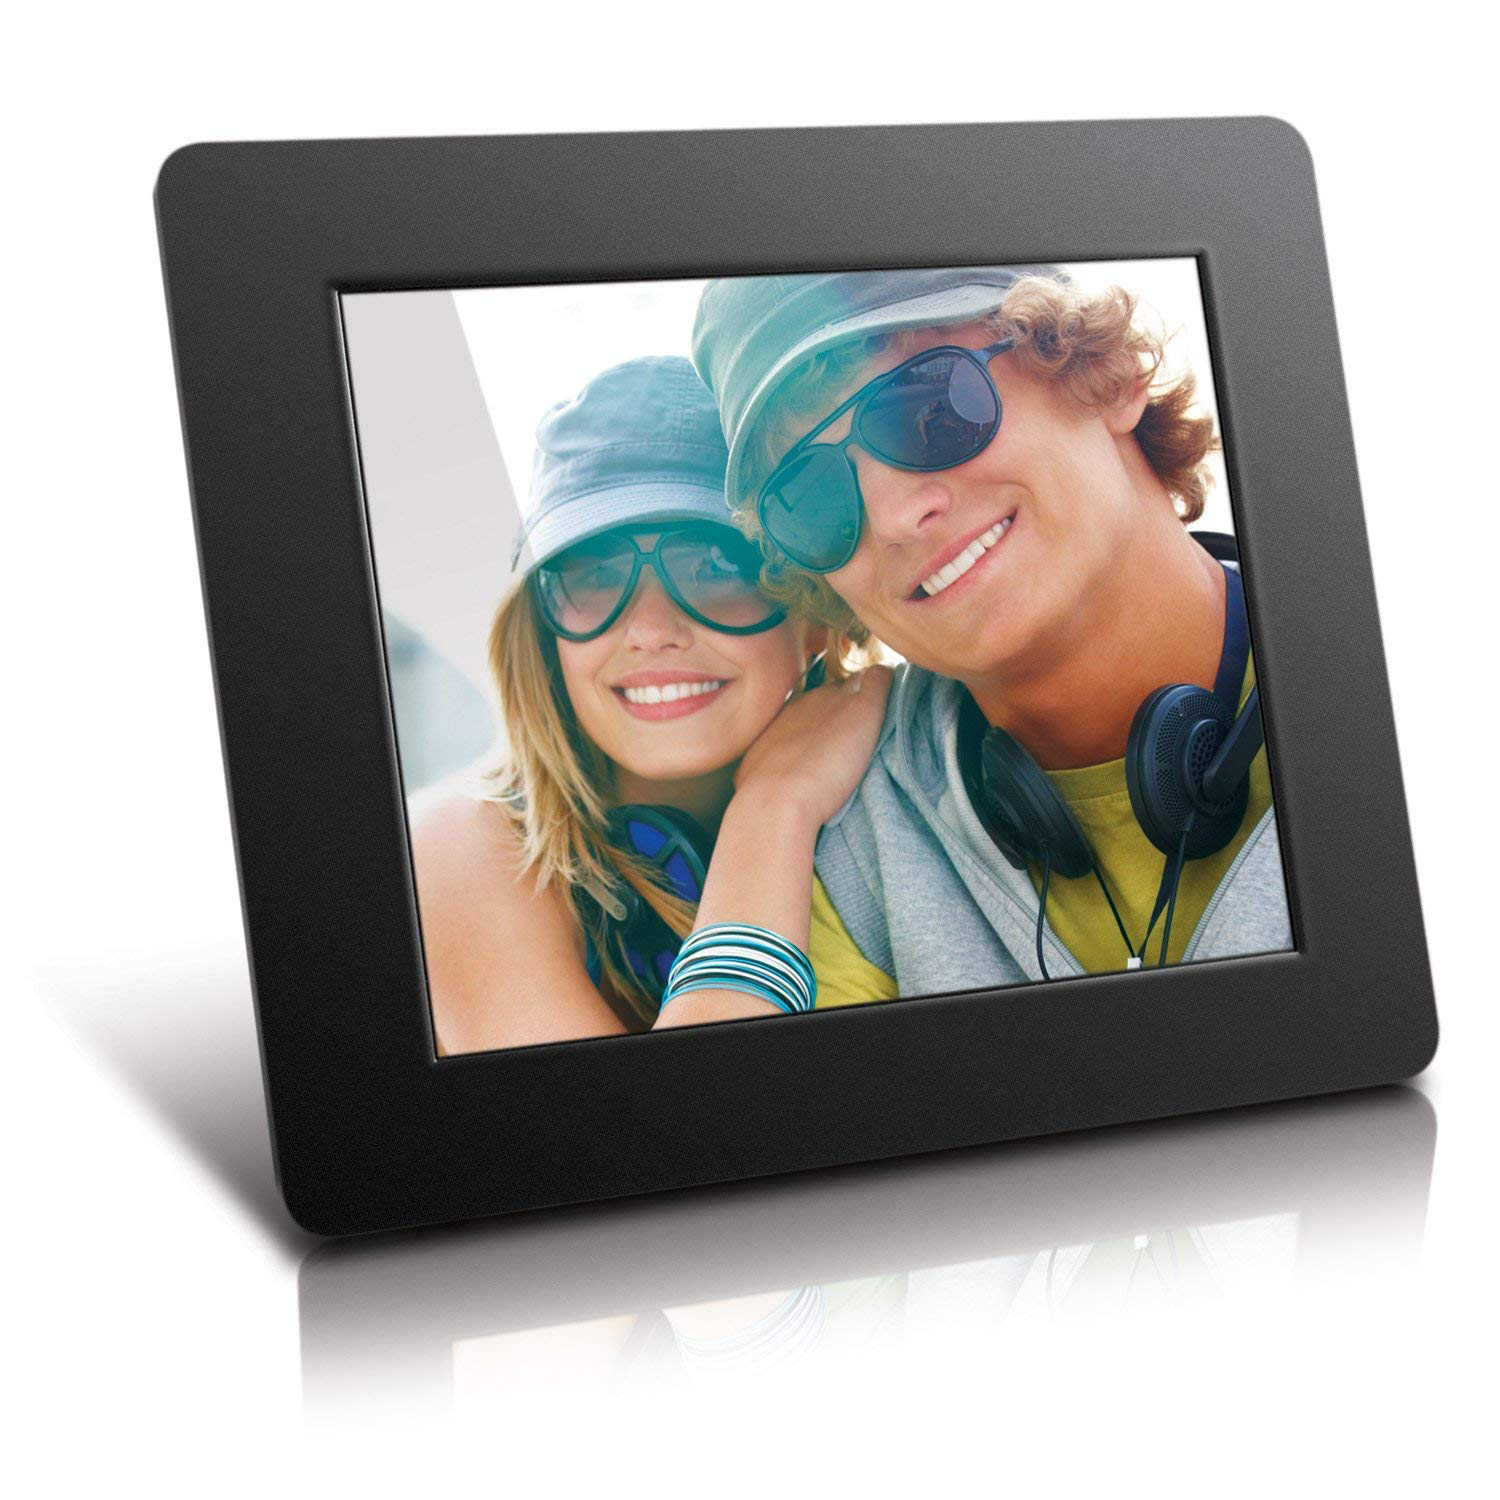 image 4 5 Best Digital Photo Frames 2021 - Digital Picture Frames with SD Card, Wifi